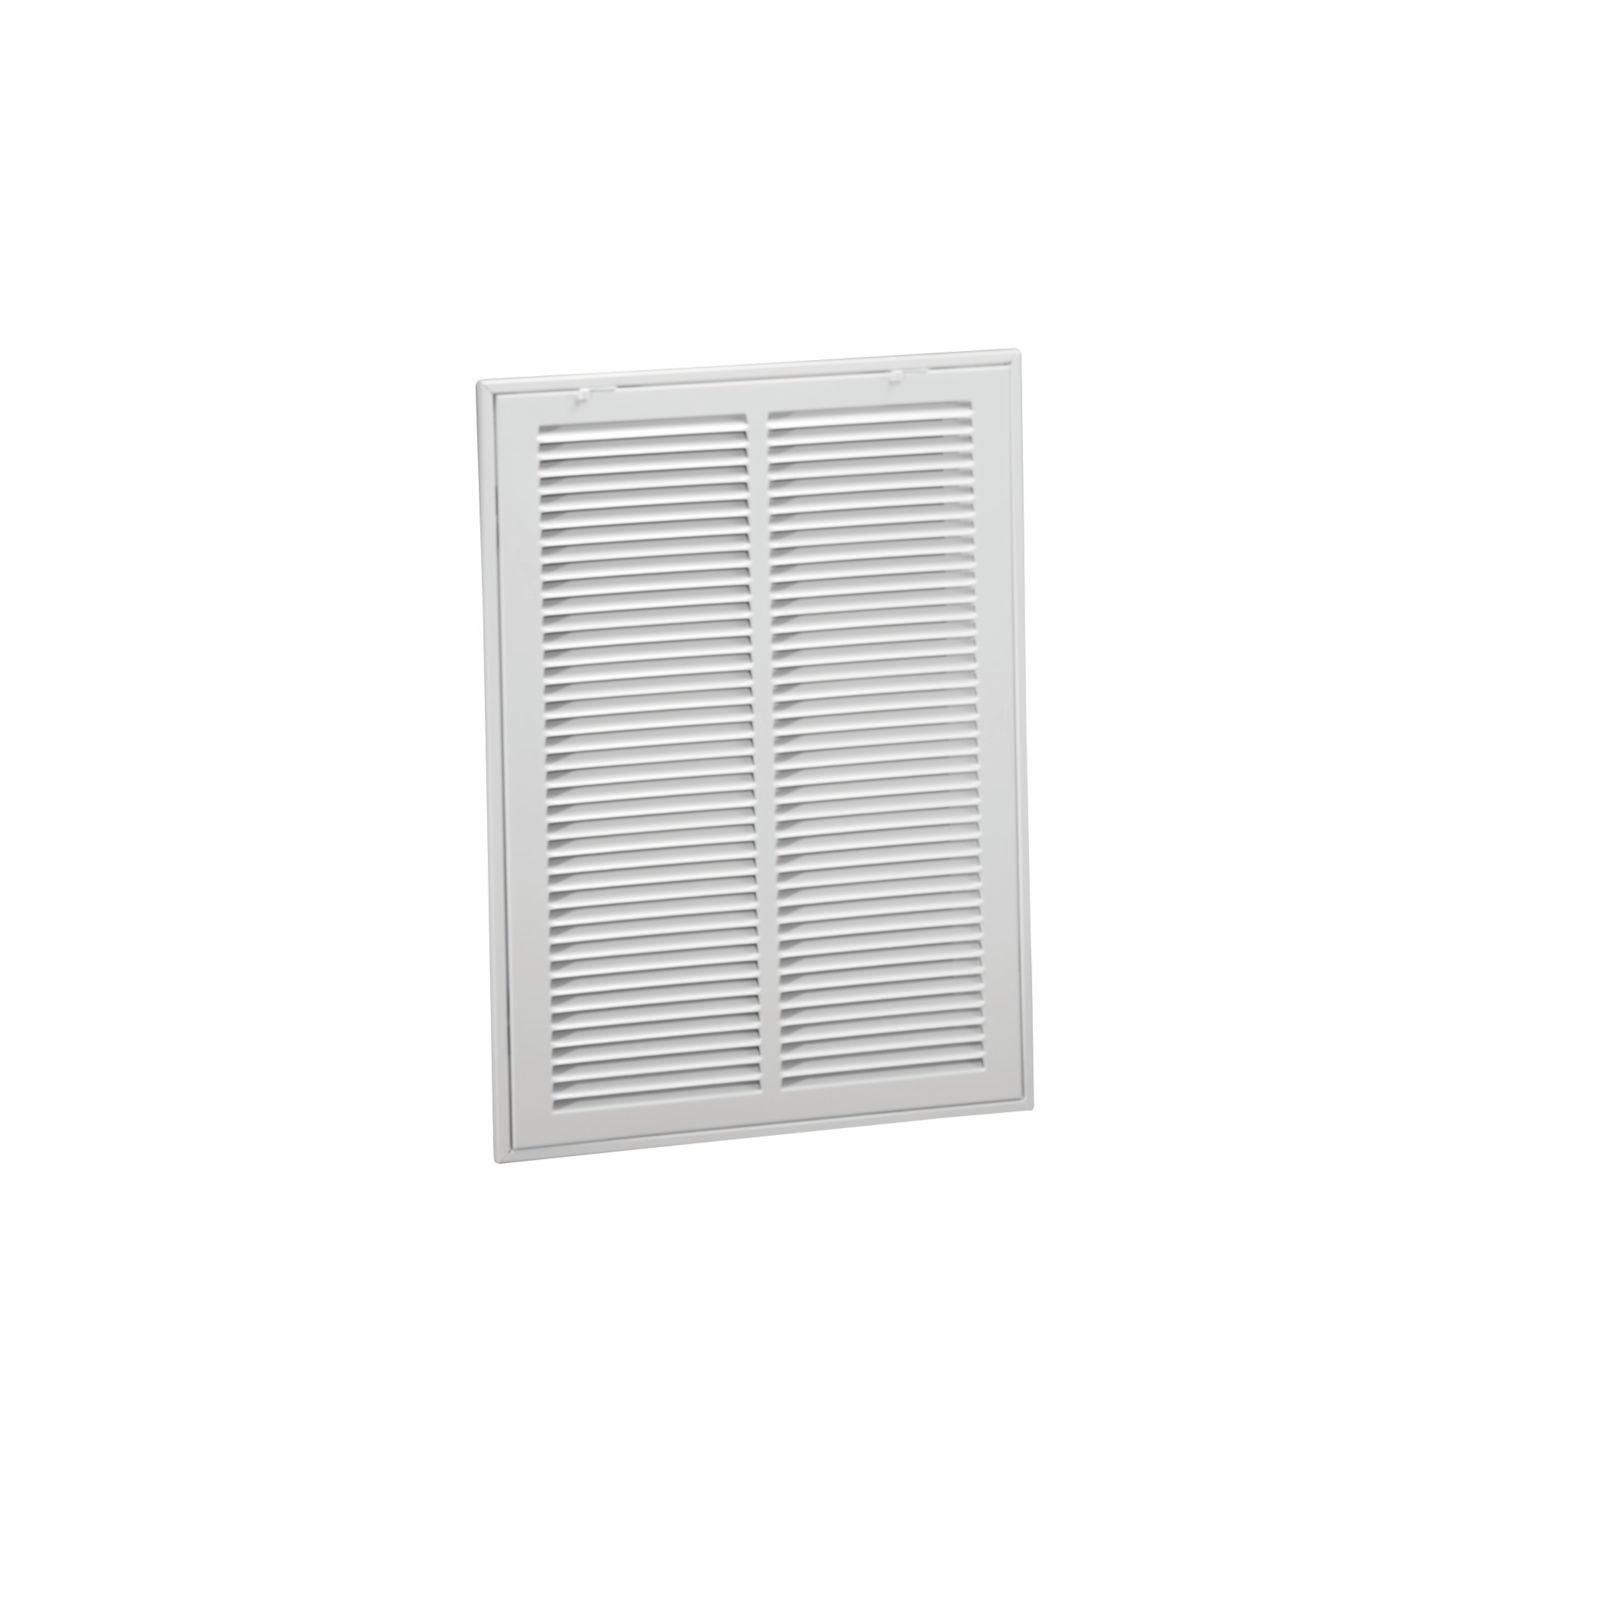 "Hart & Cooley 043515 - #673 Steel Return Air Filter Grille, White Finish, 20"" X 10"""